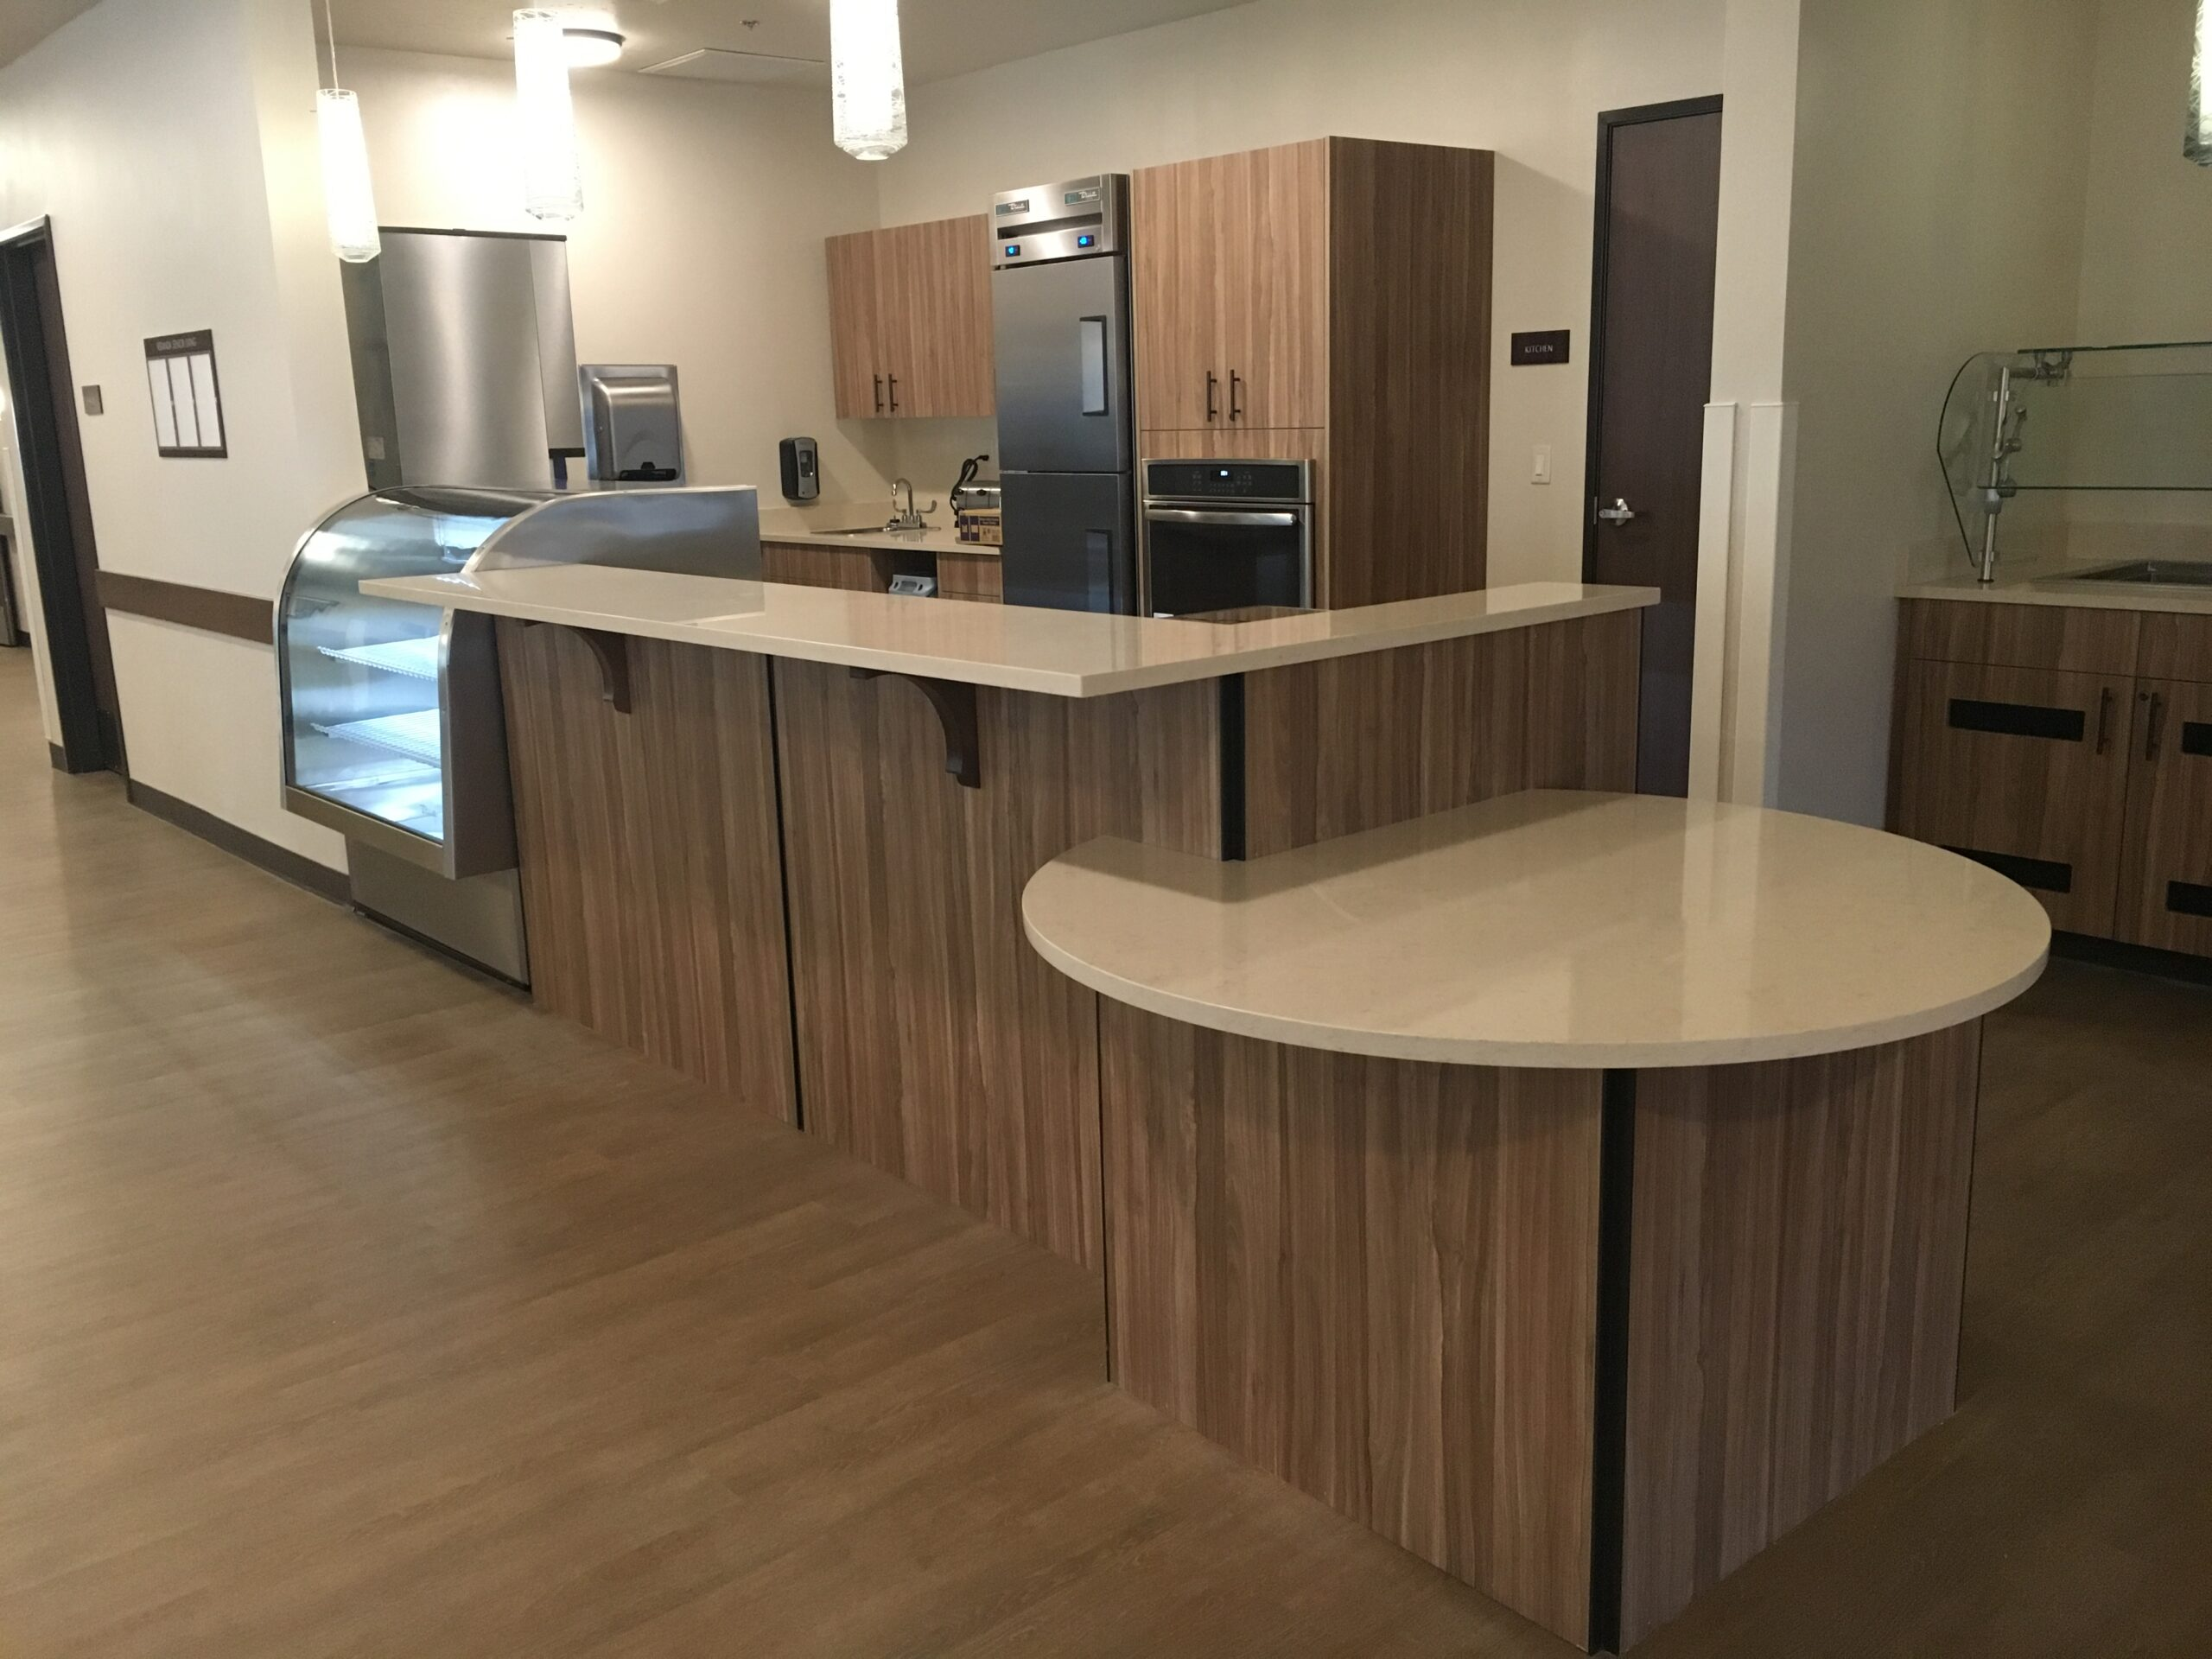 Sawtooth Concepts Hospital Kitchen